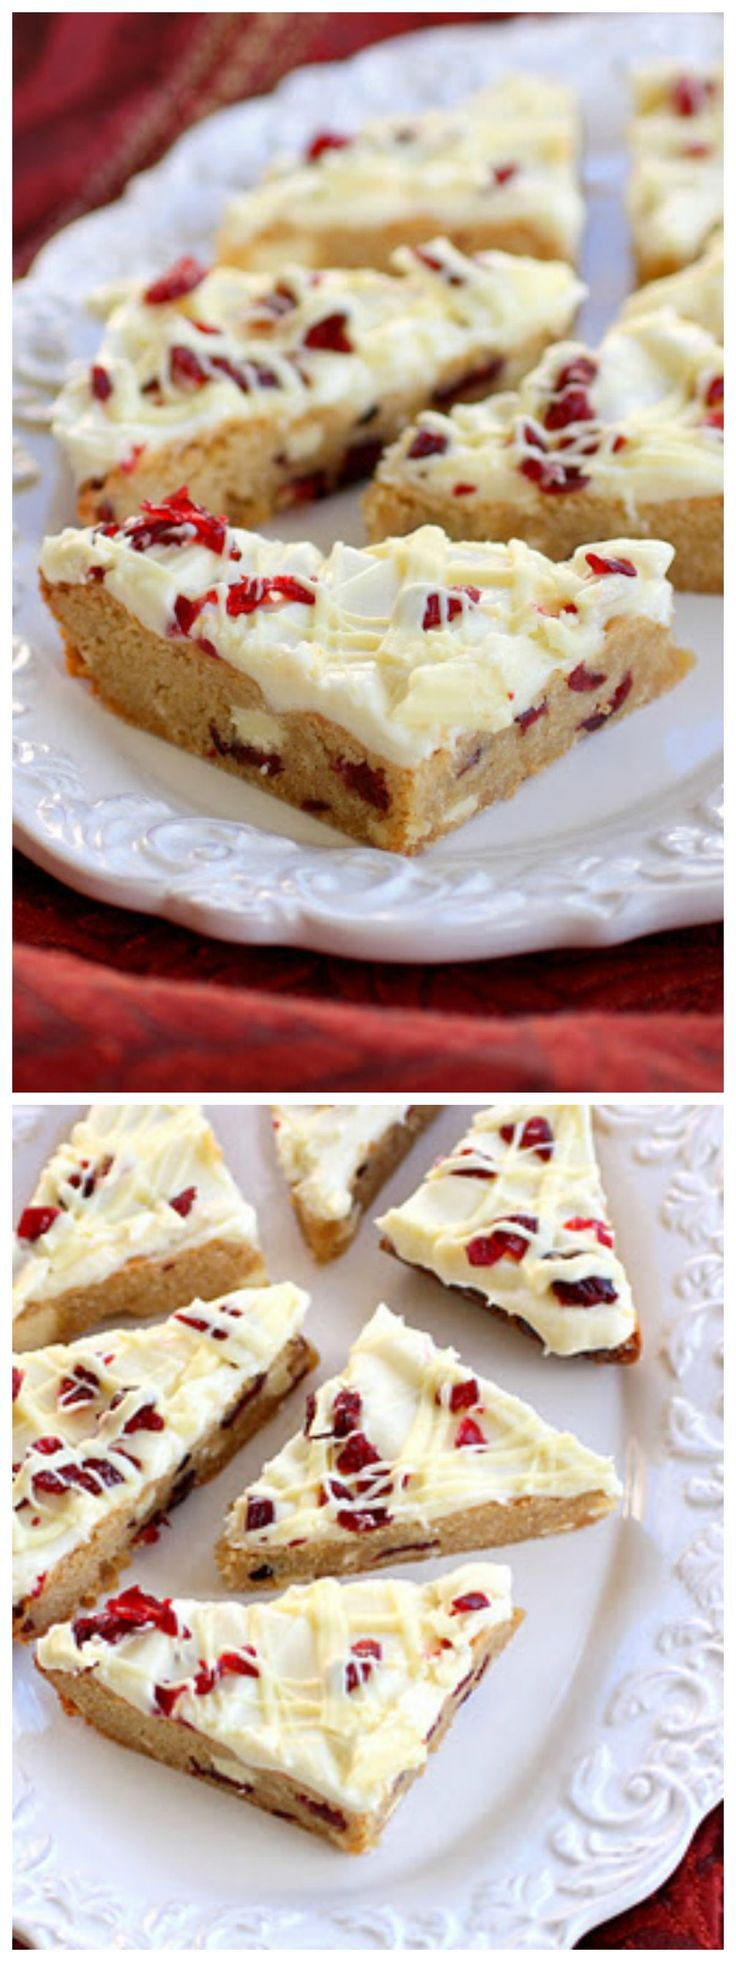 Cranberry Bliss Bars...looovvvvee! Unbelievably easy to make and taste very good! Everyone will think that you're a world-famous chef in secret!